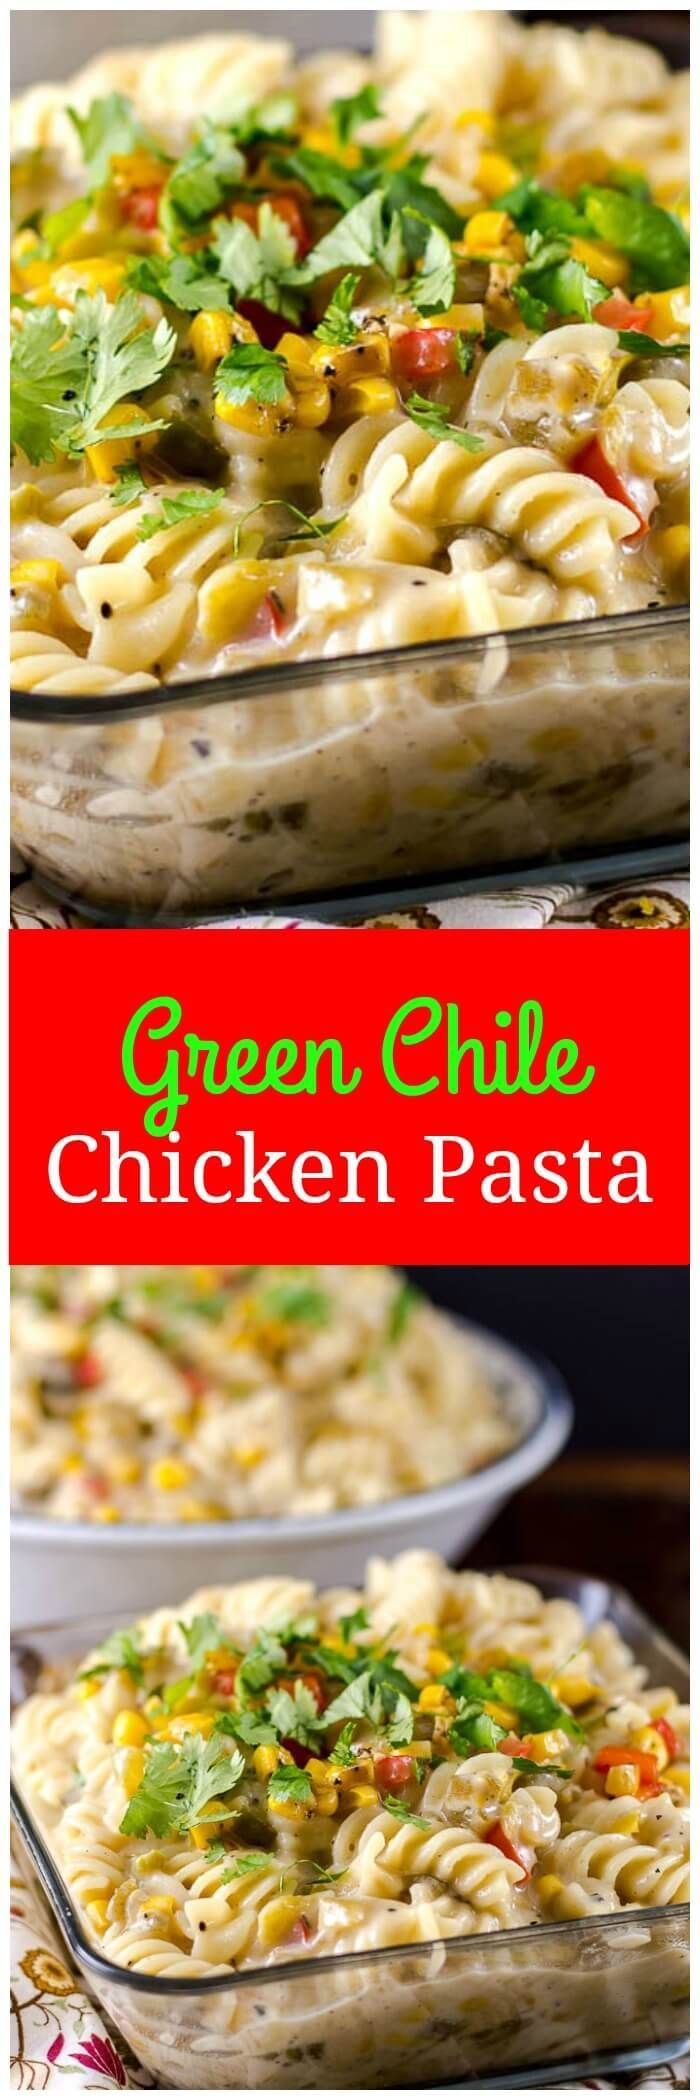 This Green Chile Chicken Pasta is a rich and creamy Southwest style pasta dish. #MyExceptionalPasta #GoldenHarvest #Pmedia #ad via @flavormosaic